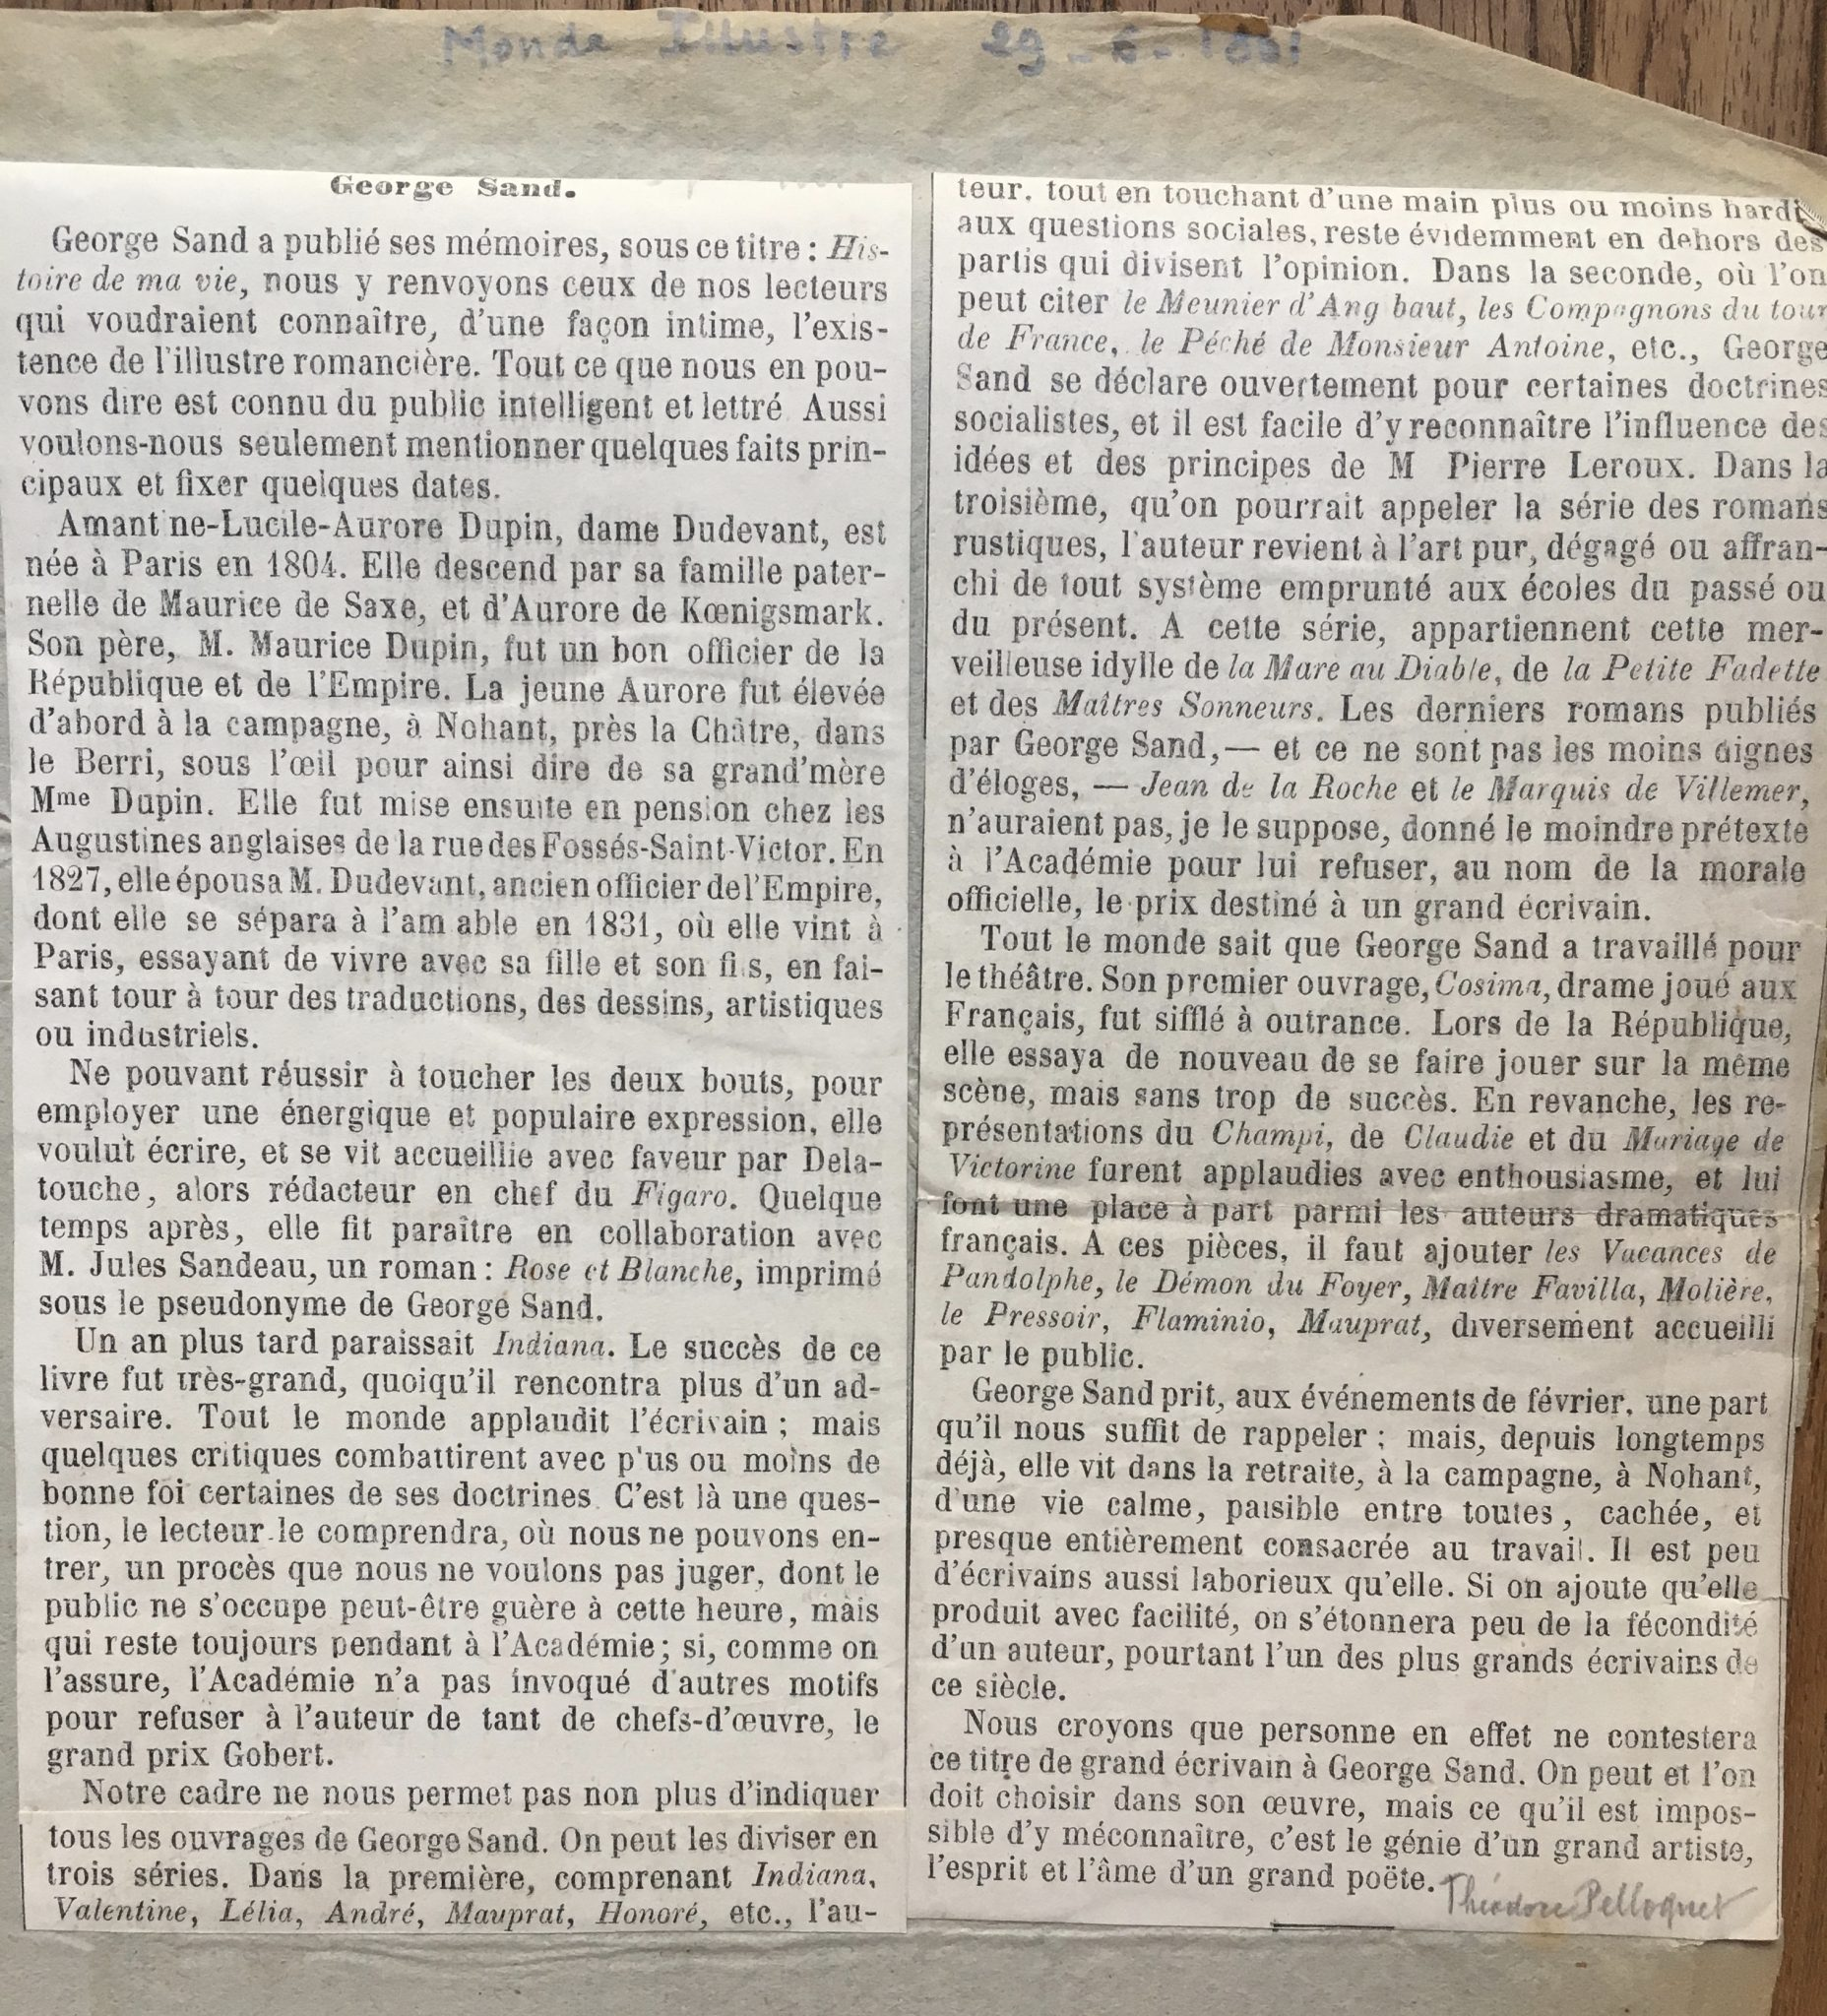 Le Monde Illustré 1861